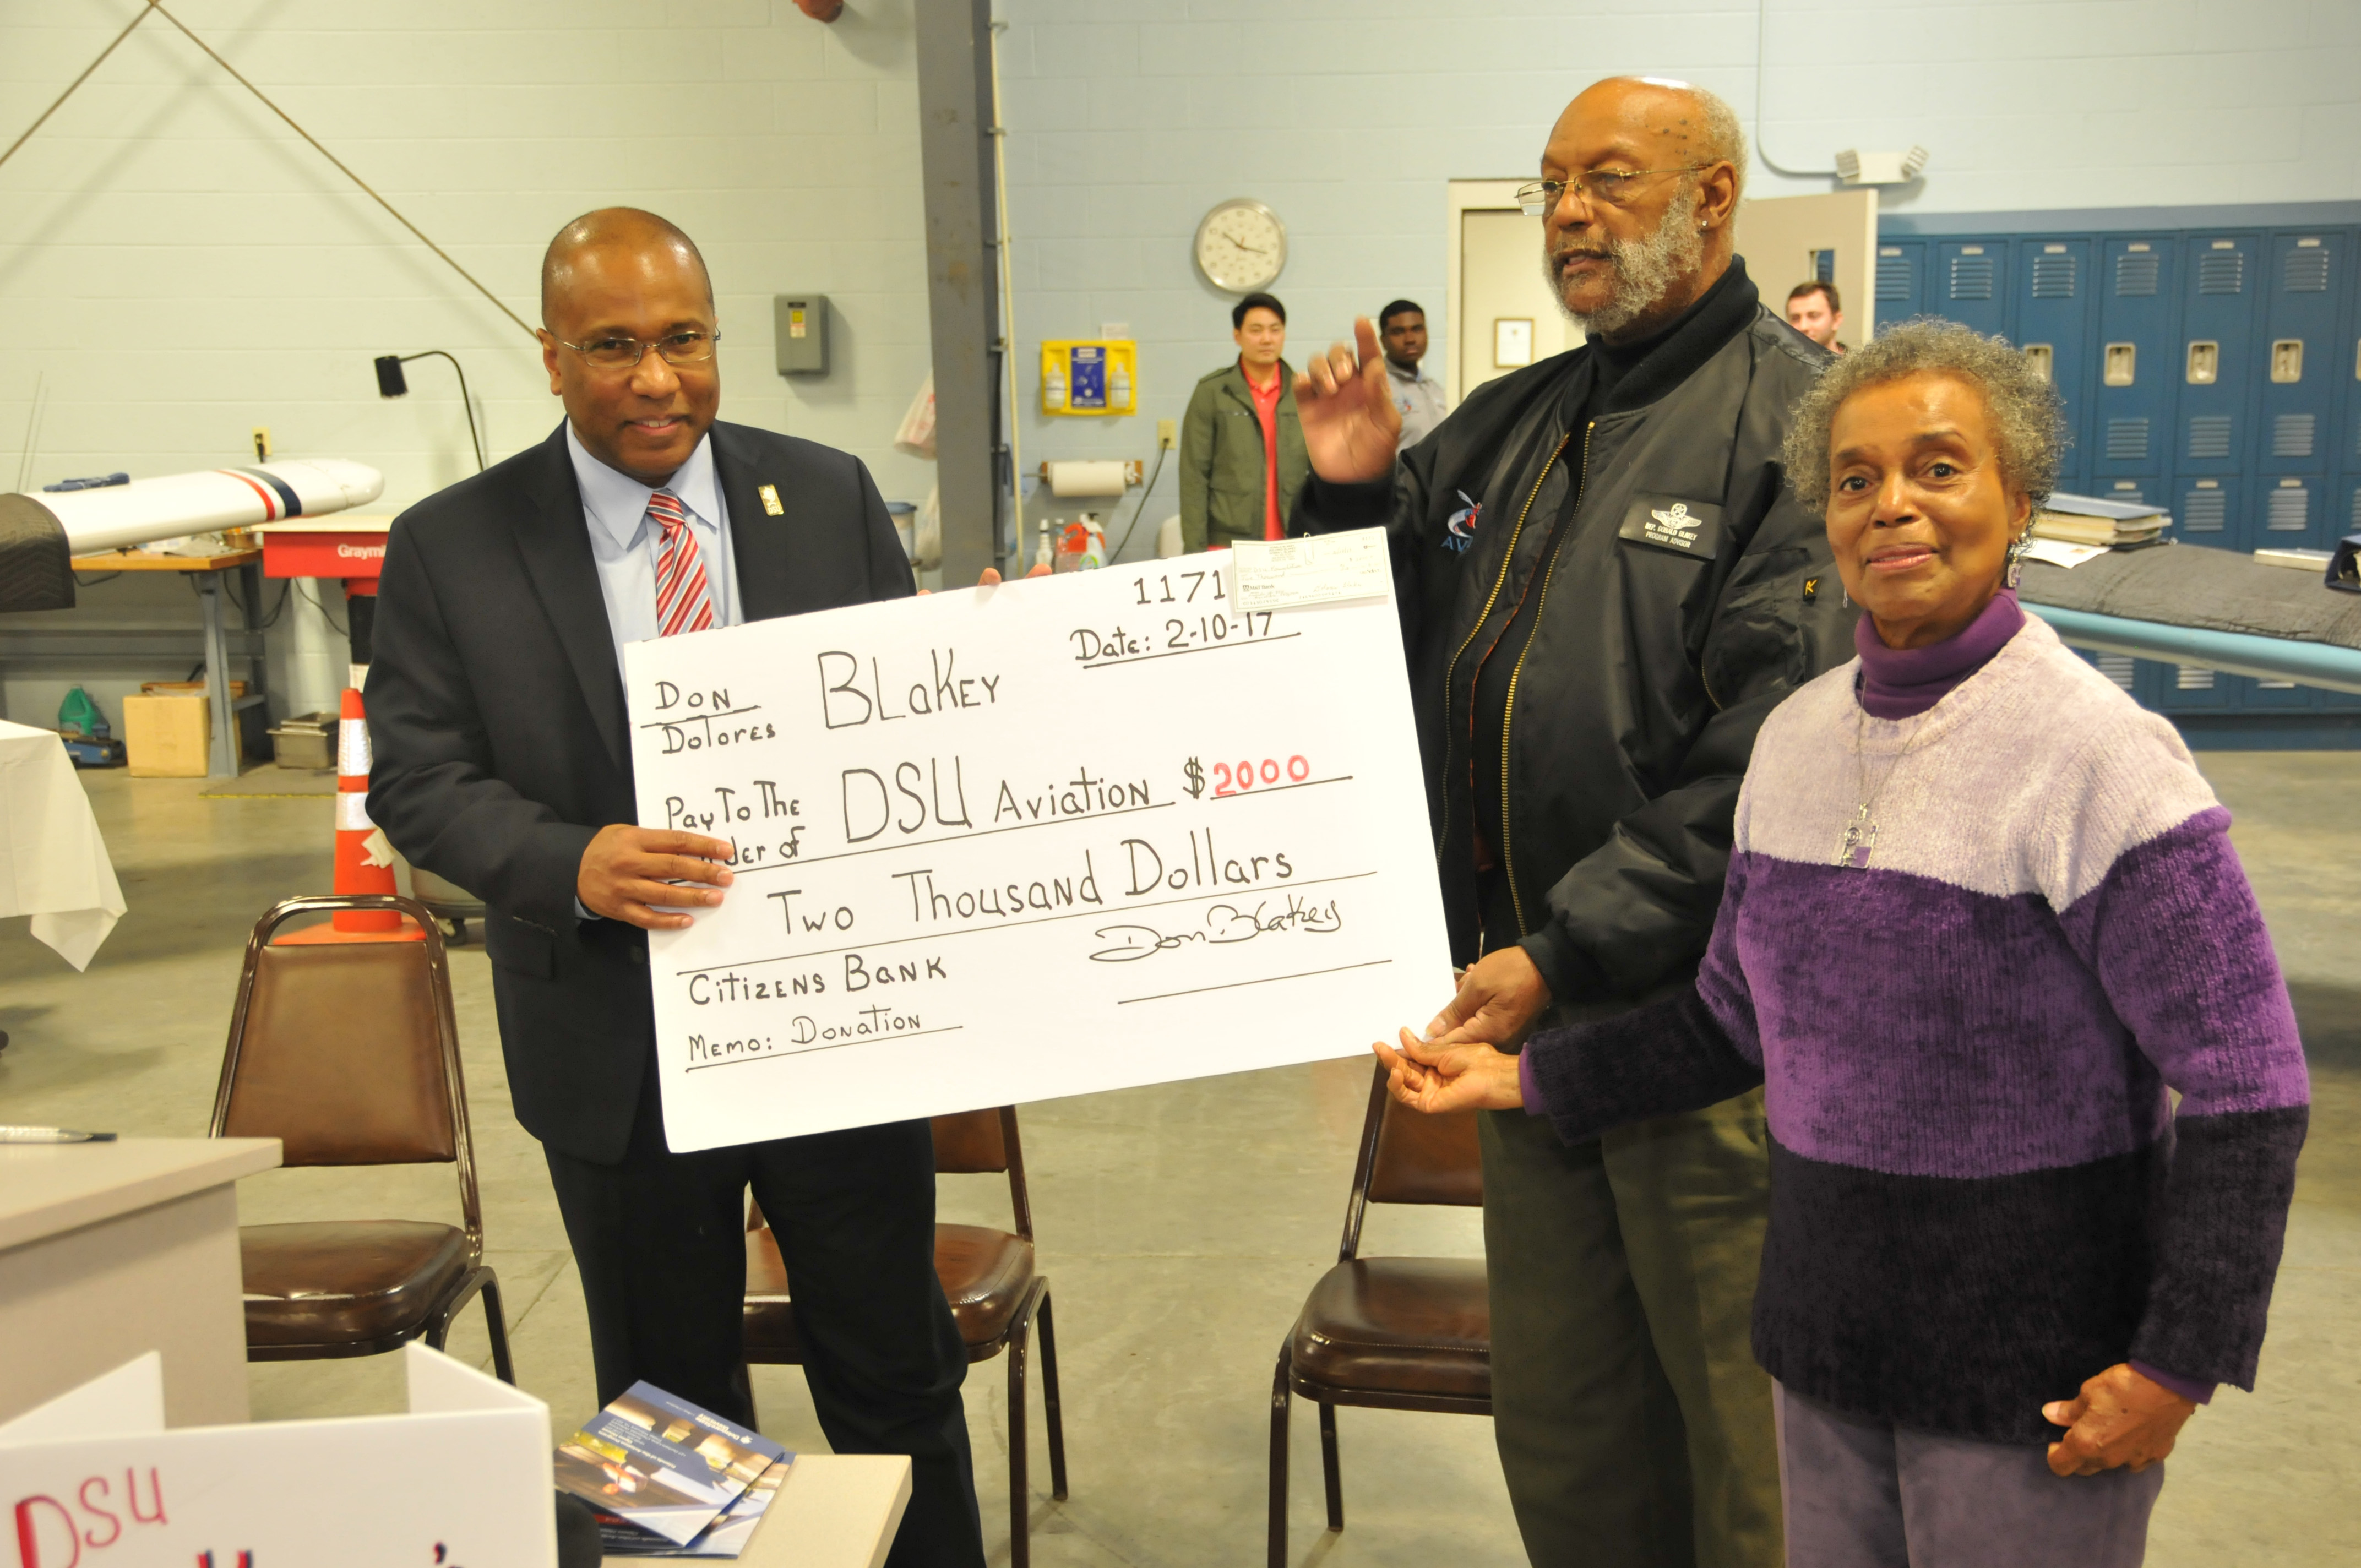 Friends of Aviation Program Launches Fundraising Campaign